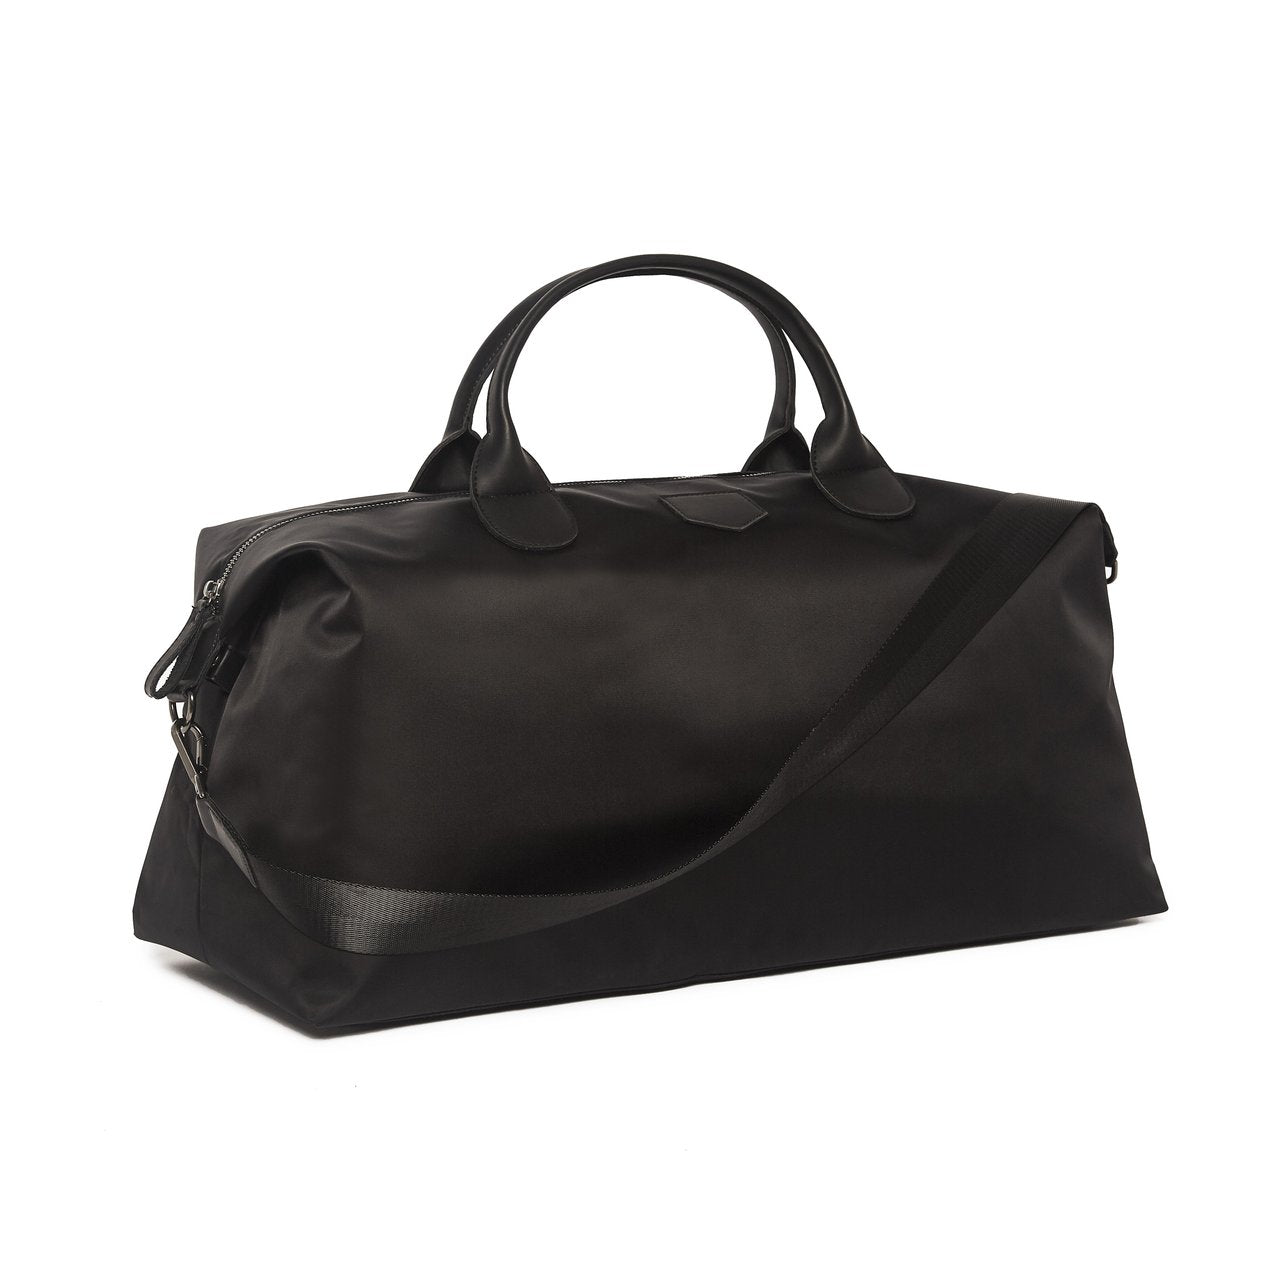 Men's Black Duffle/Weekender Bag